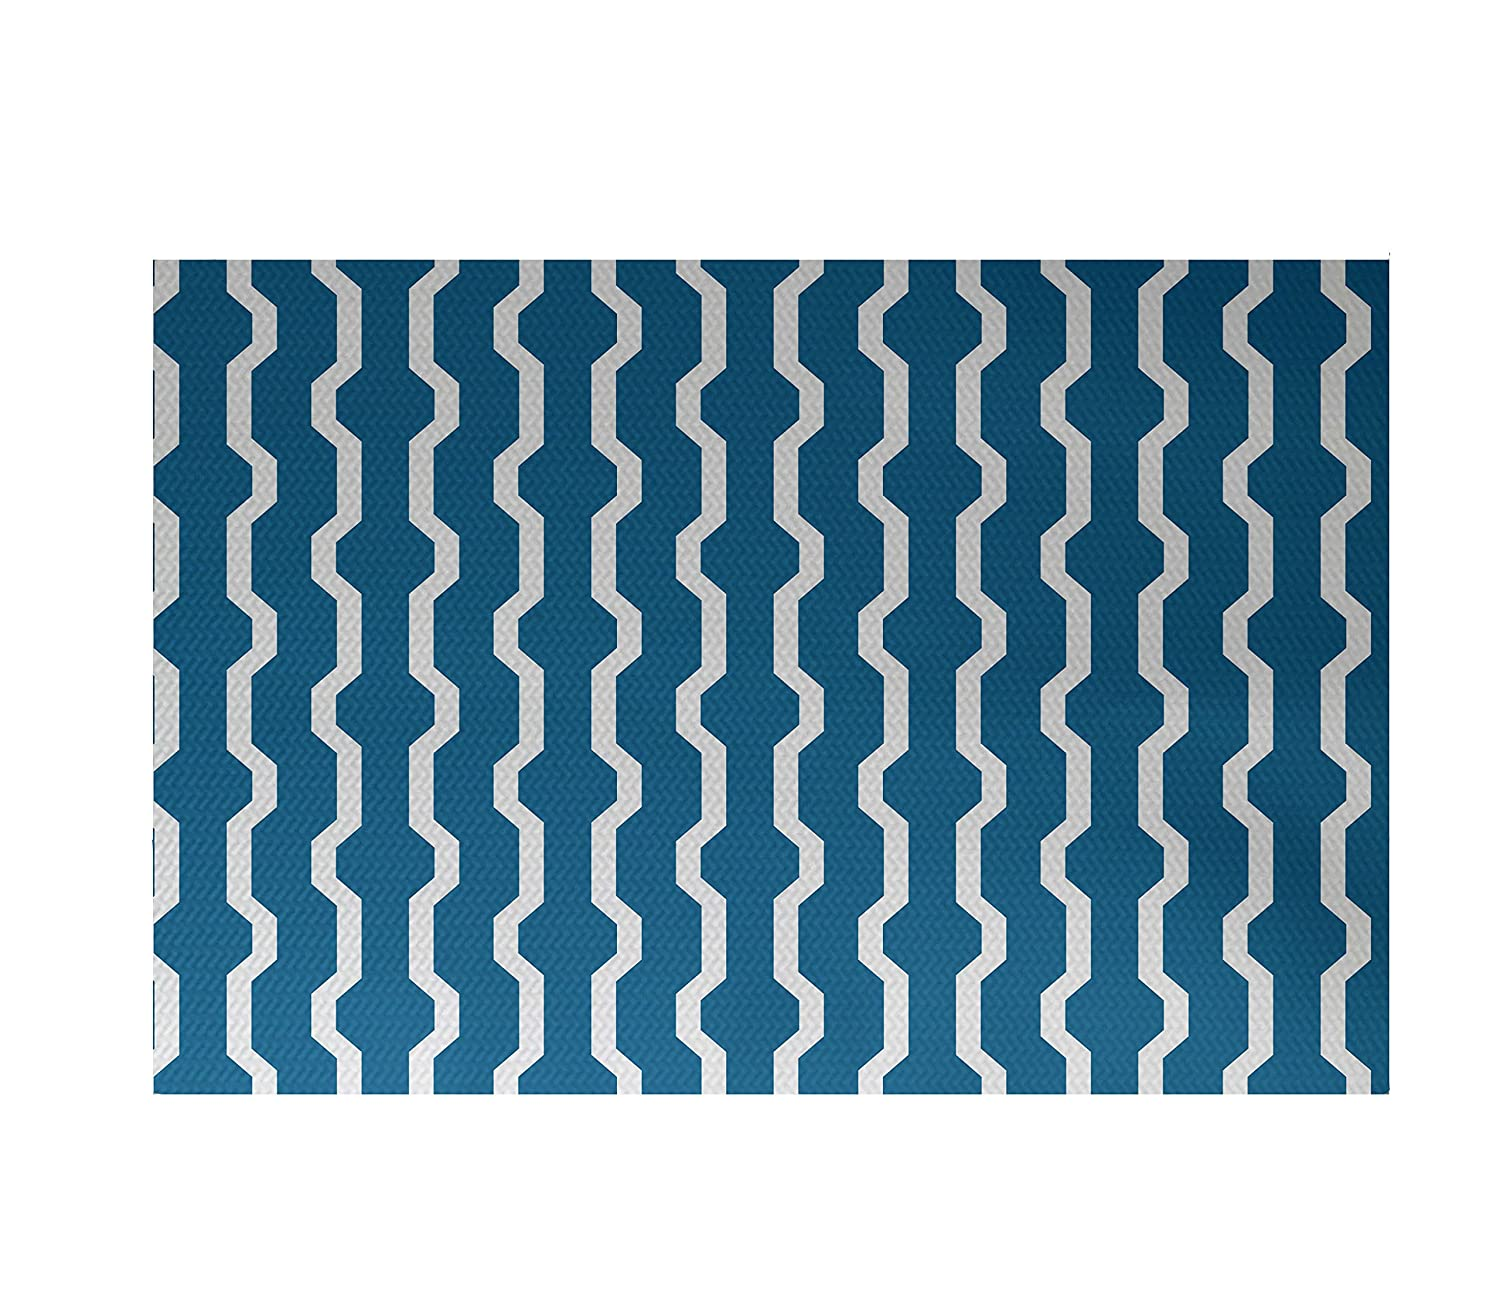 3 by 5 Turquoise E by design RHGN276BL34-35 Nuts /& Bolts Decorative Holiday Geometric Print Rug